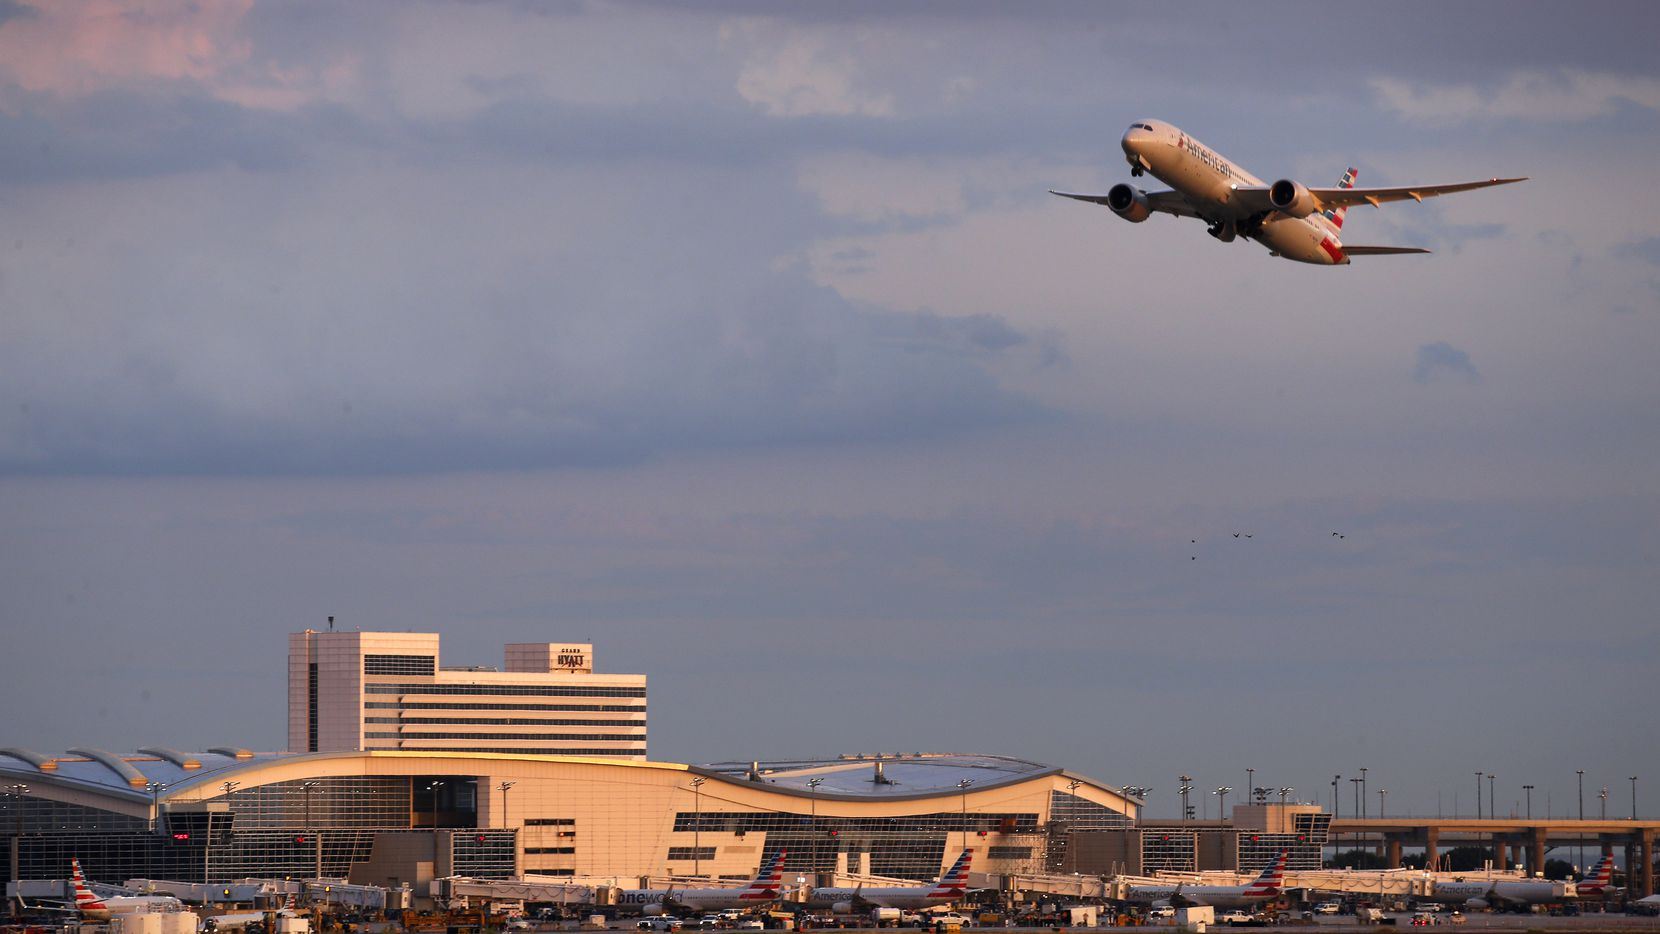 An American Airlines jet takes flight from DFW International Airport against a dramatic sunset.